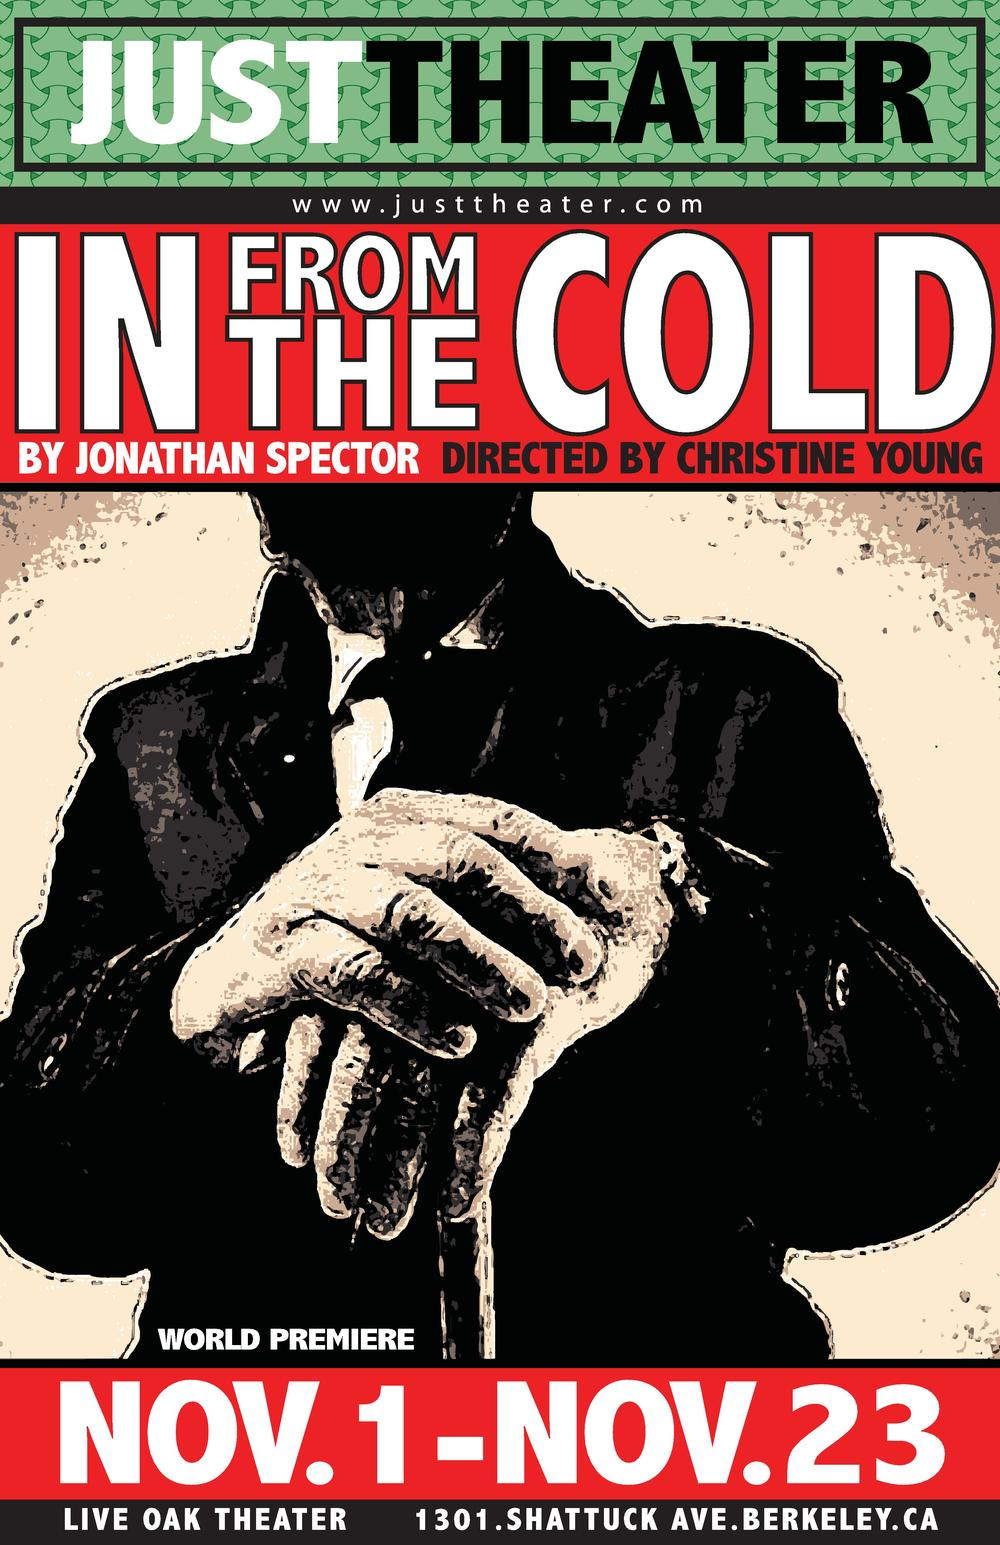 in from the cold poster 5C-page-001.jpg